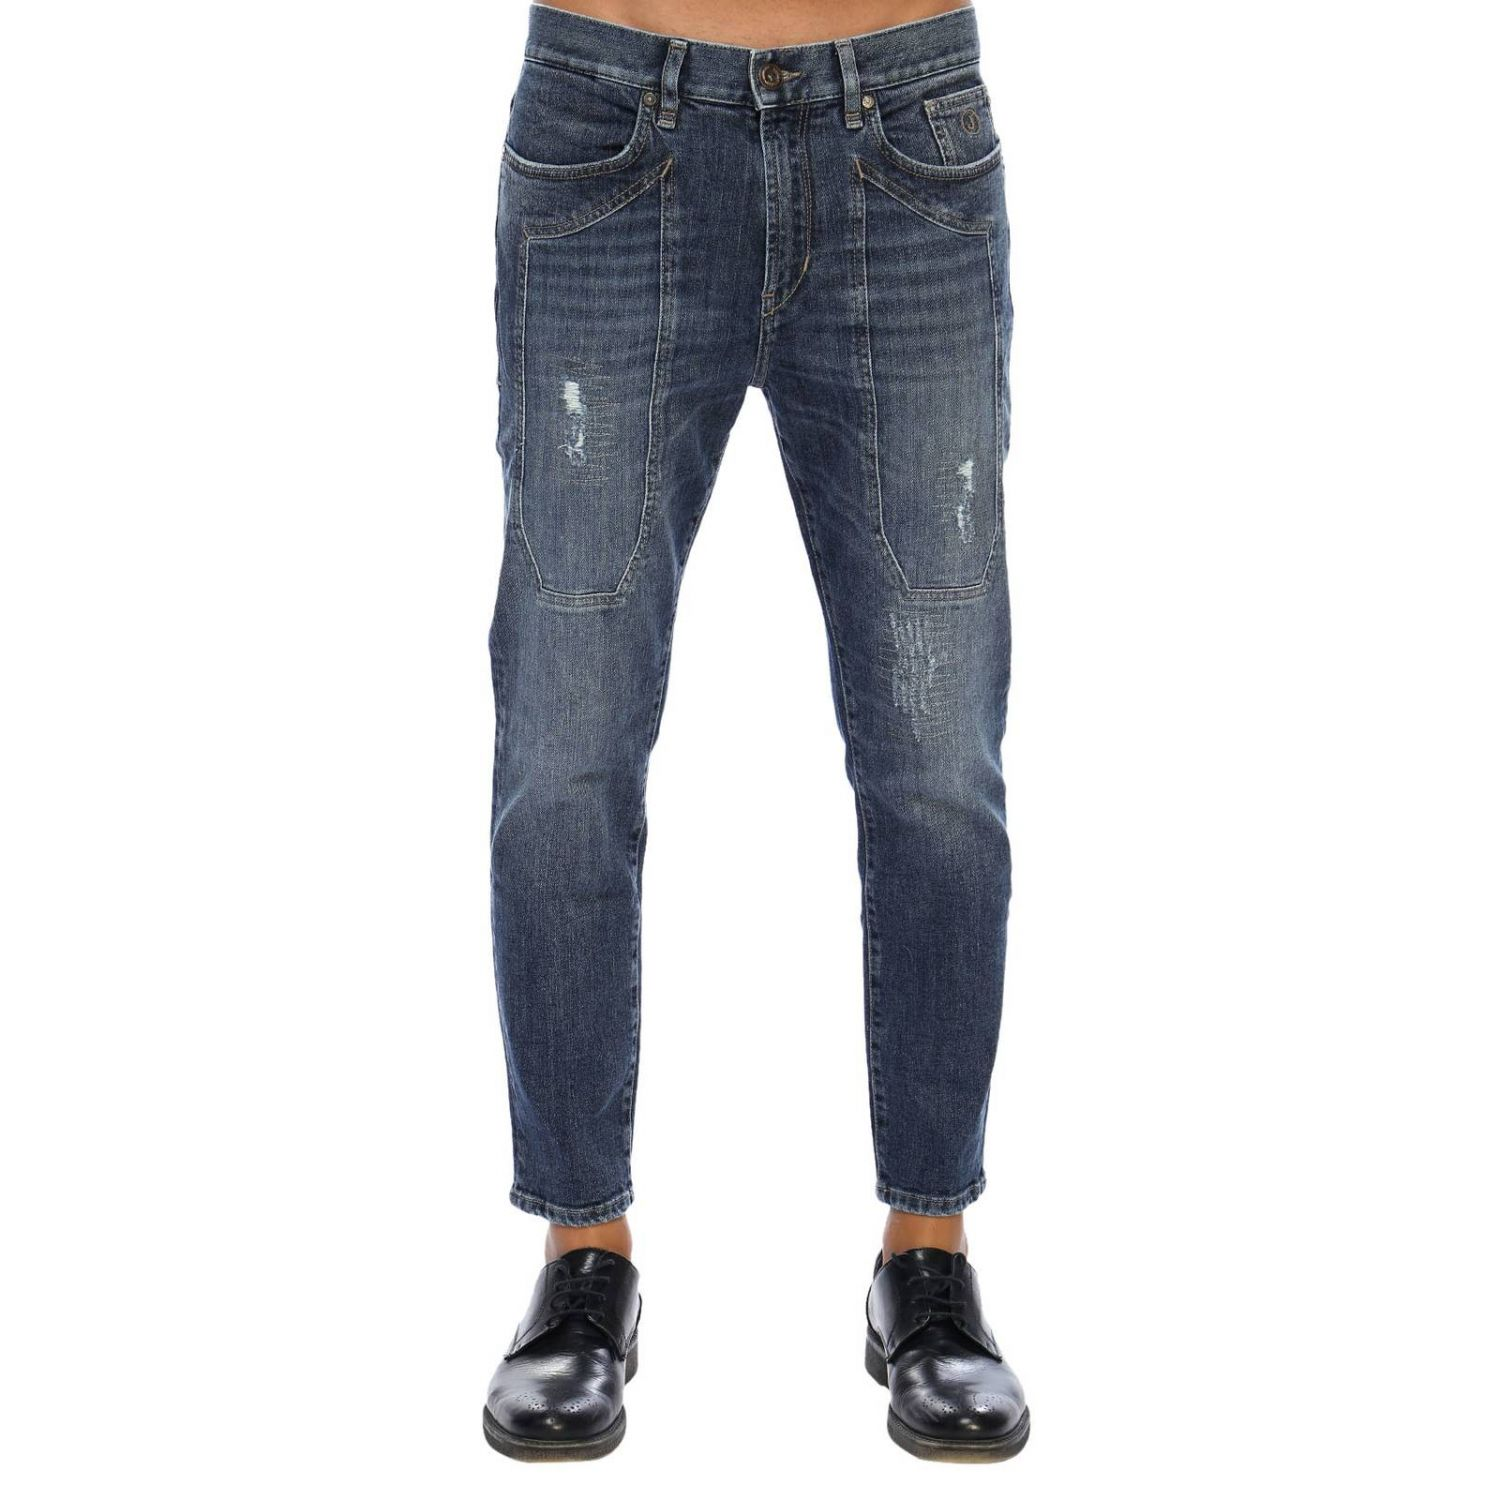 Jeans Jeans Men Jeckerson 8510757